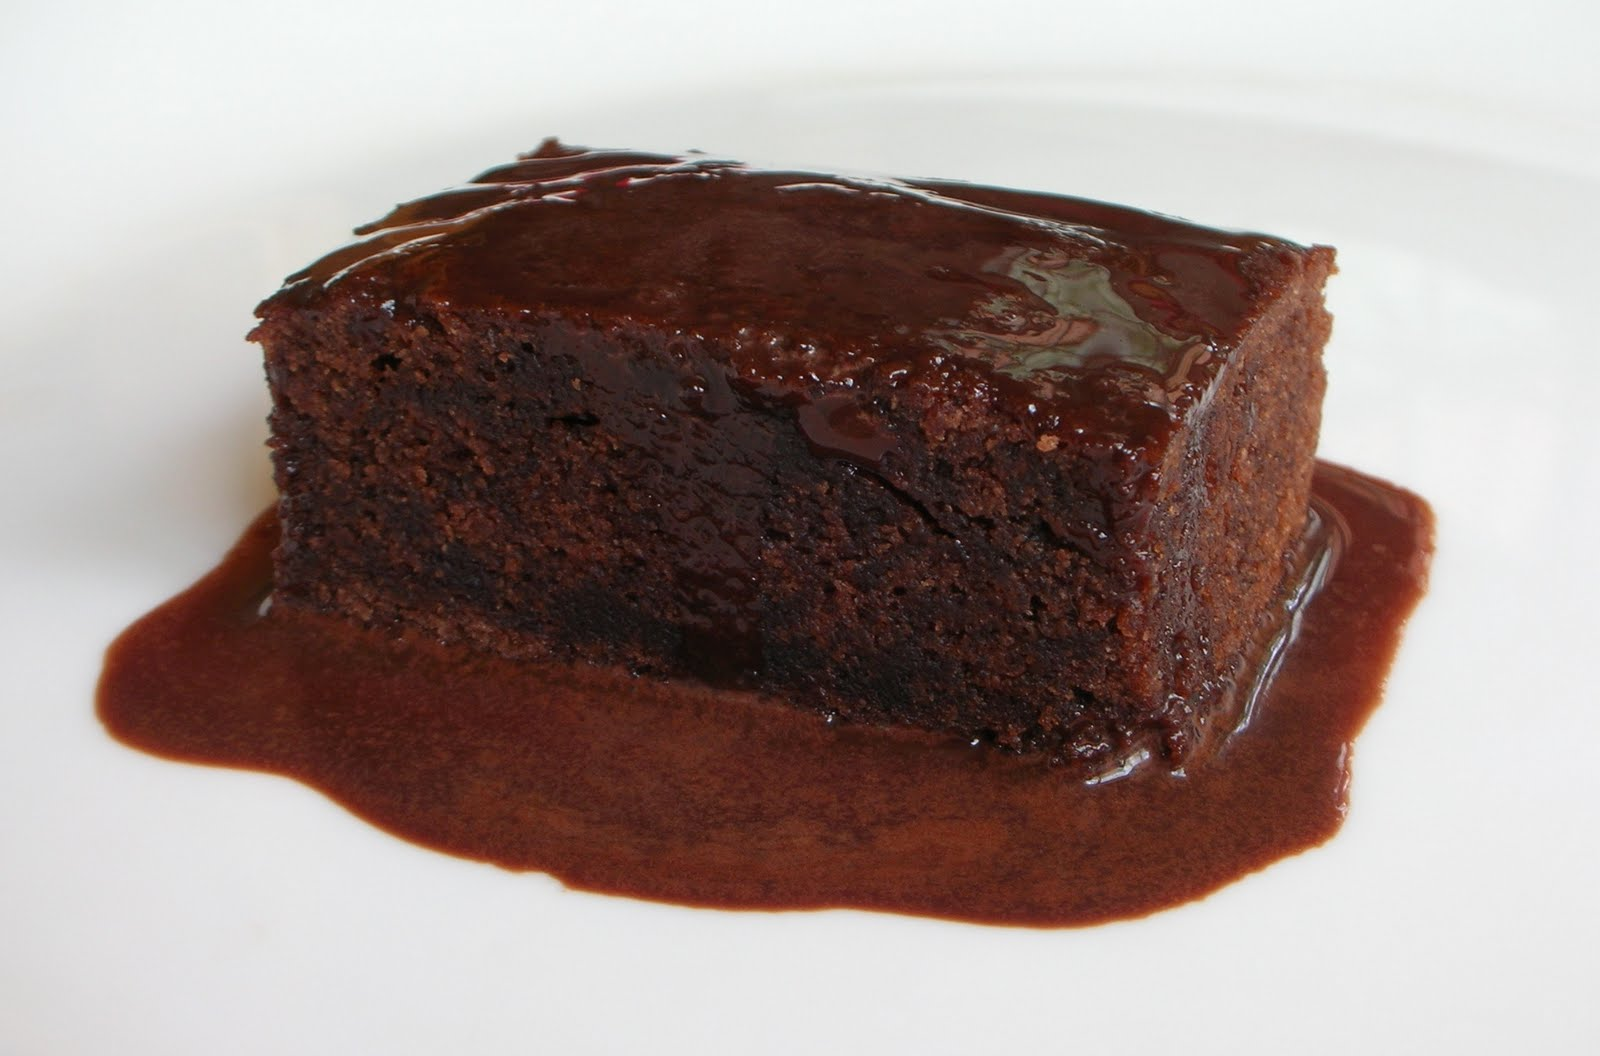 Golden Syrup Chocolate Cake